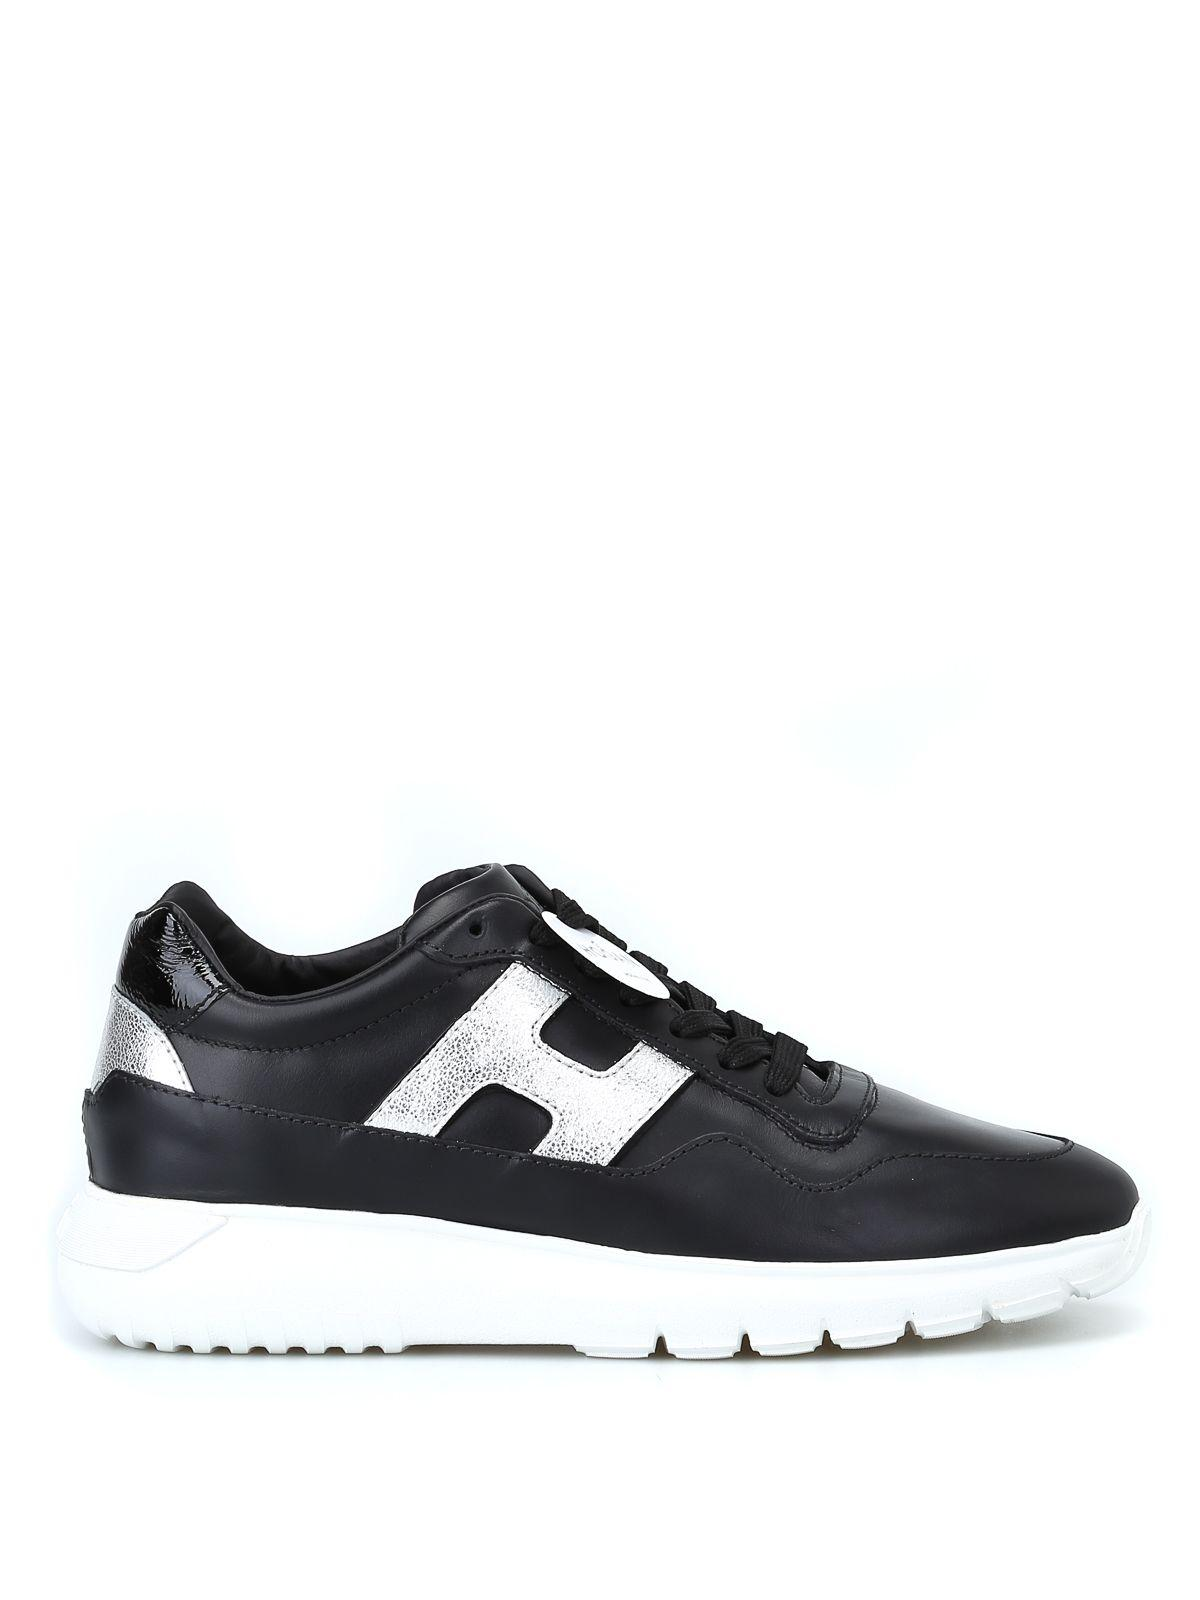 Hogan Laced Shoes In Black/silver